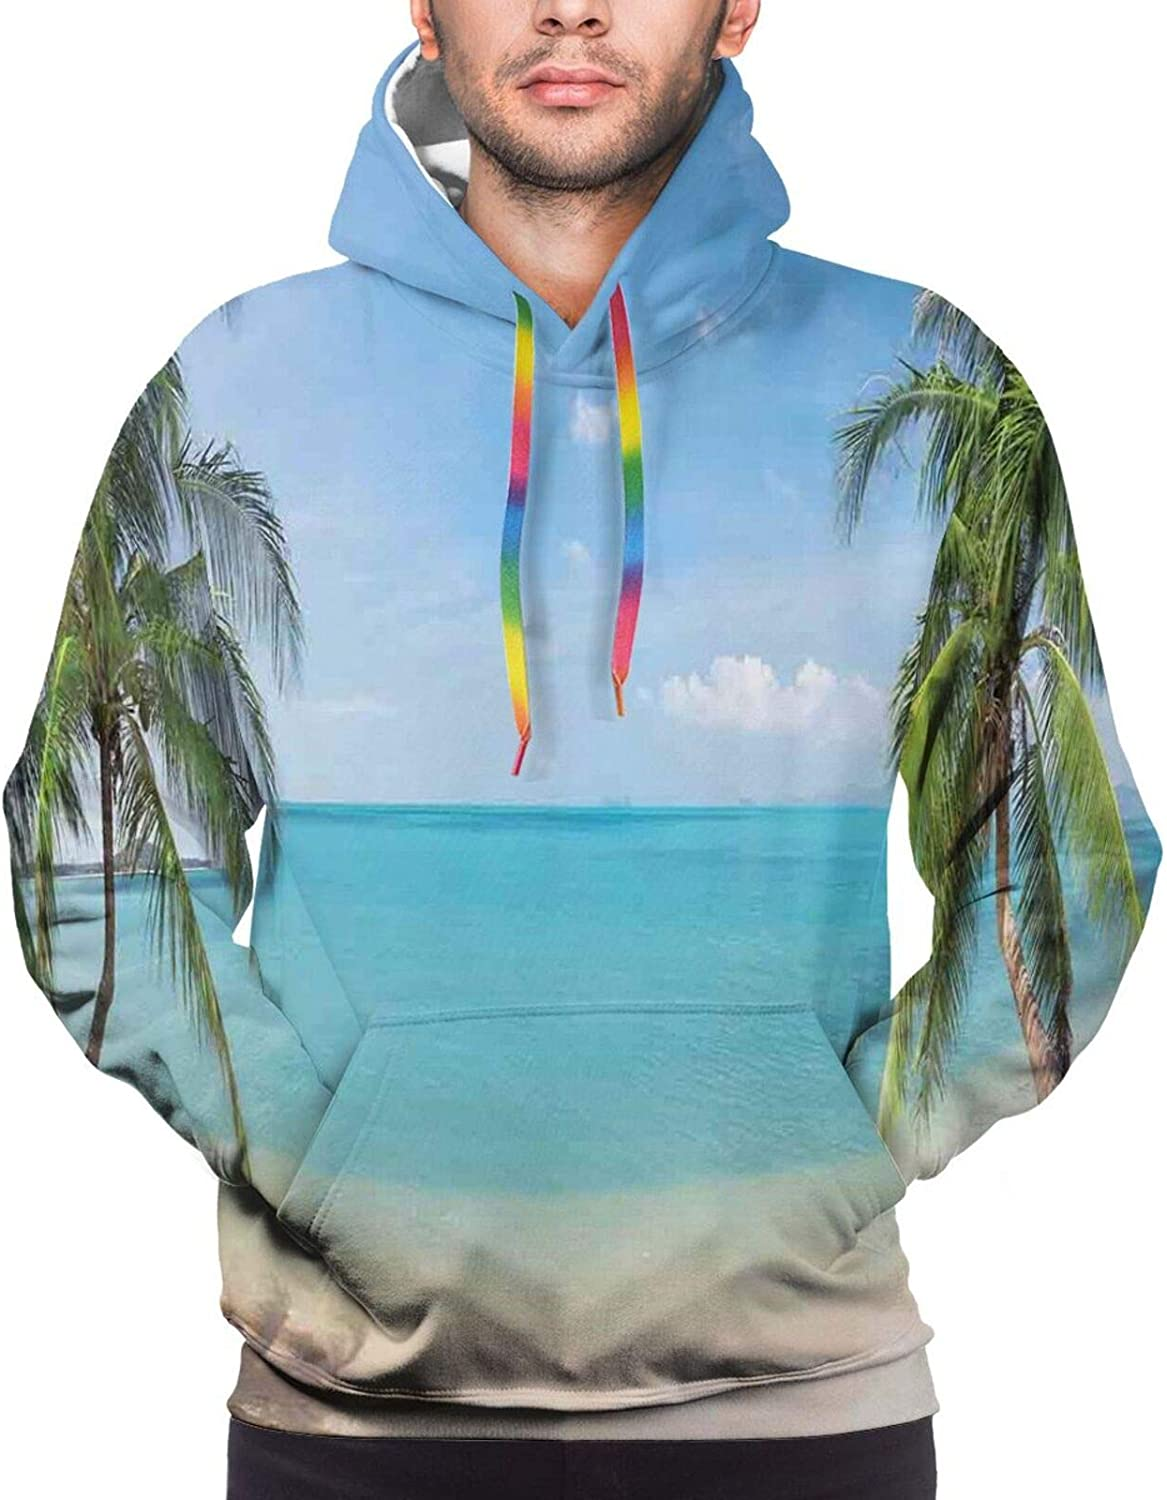 Men's Hoodies Sweatshirts,Panoramic Landscape with Lonely Bison and Snowy Mountains at Grand Loop Yellowstone